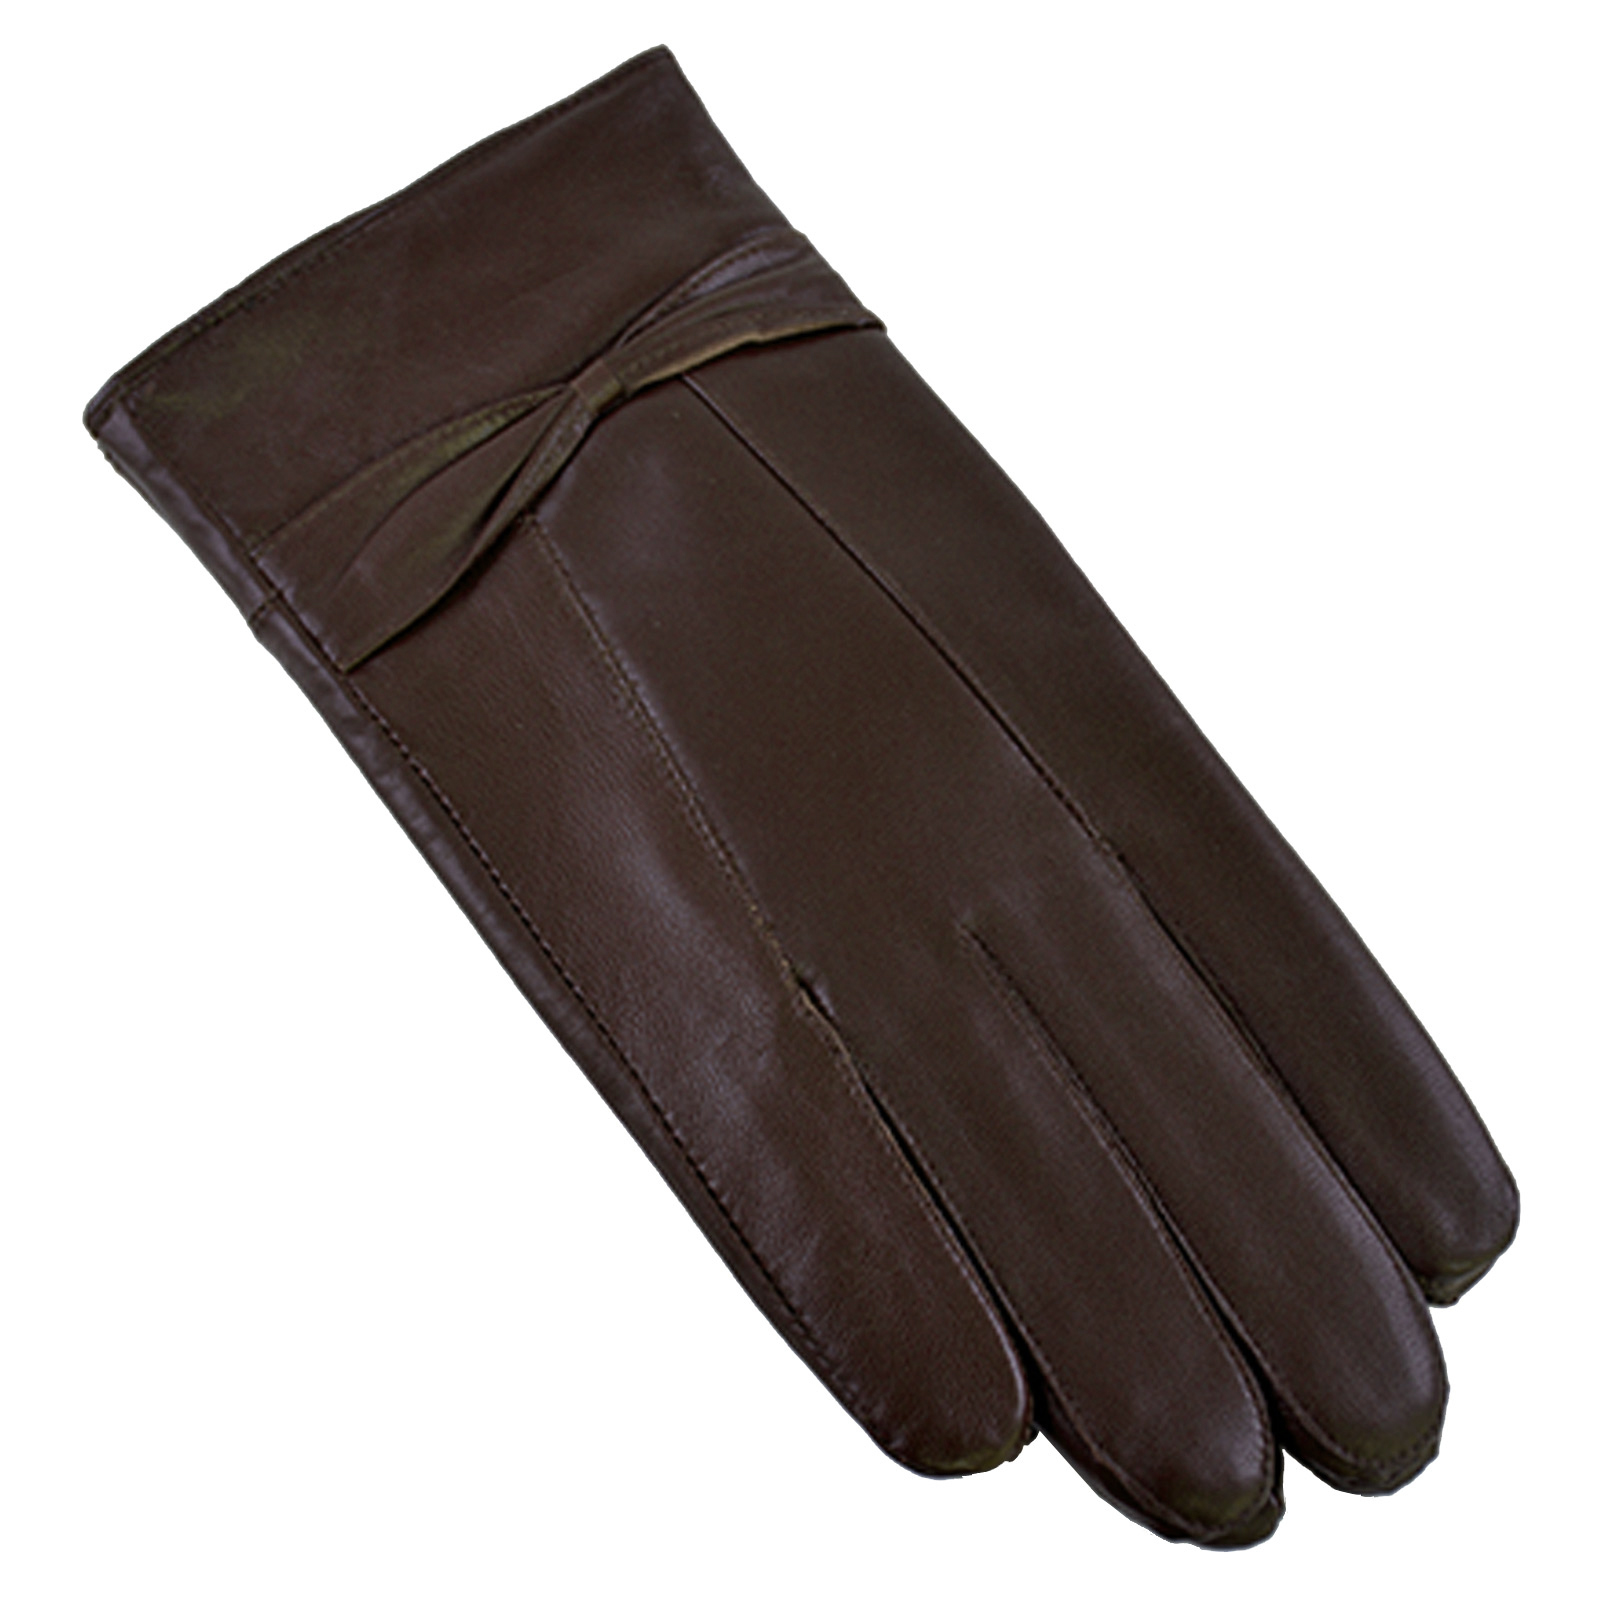 Ladies leather gloves extra small - Our Top Pick